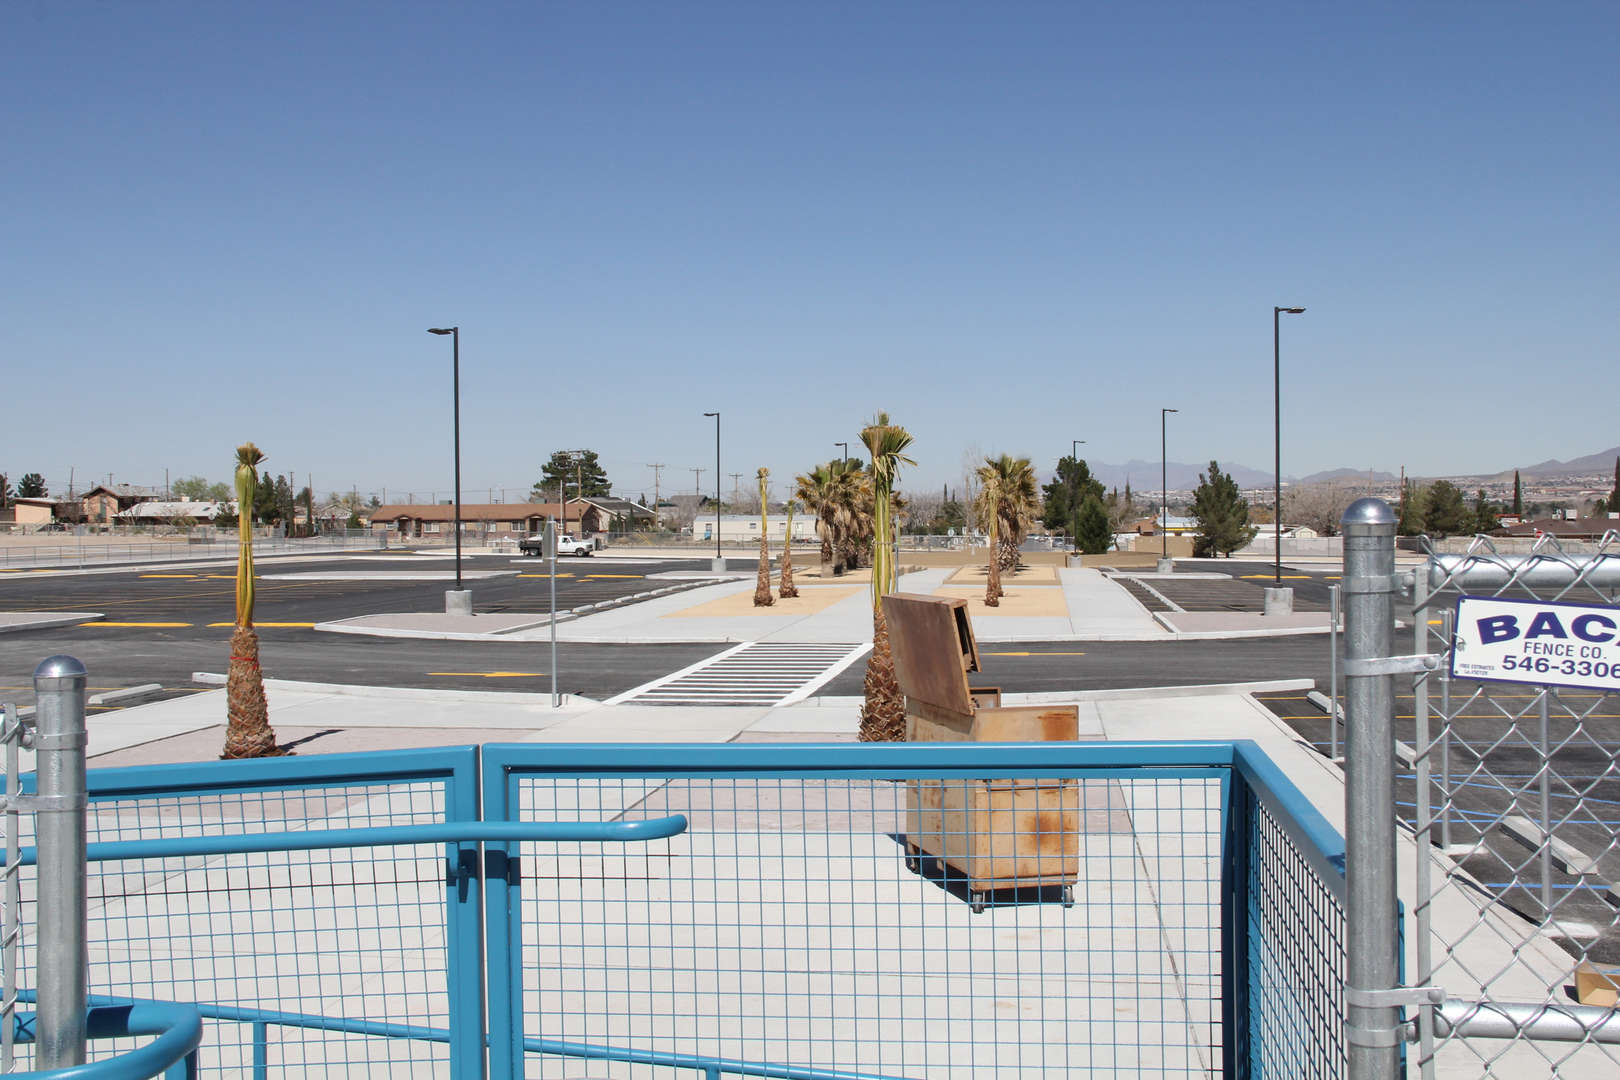 Desert View Elementary porking lot and landscape img